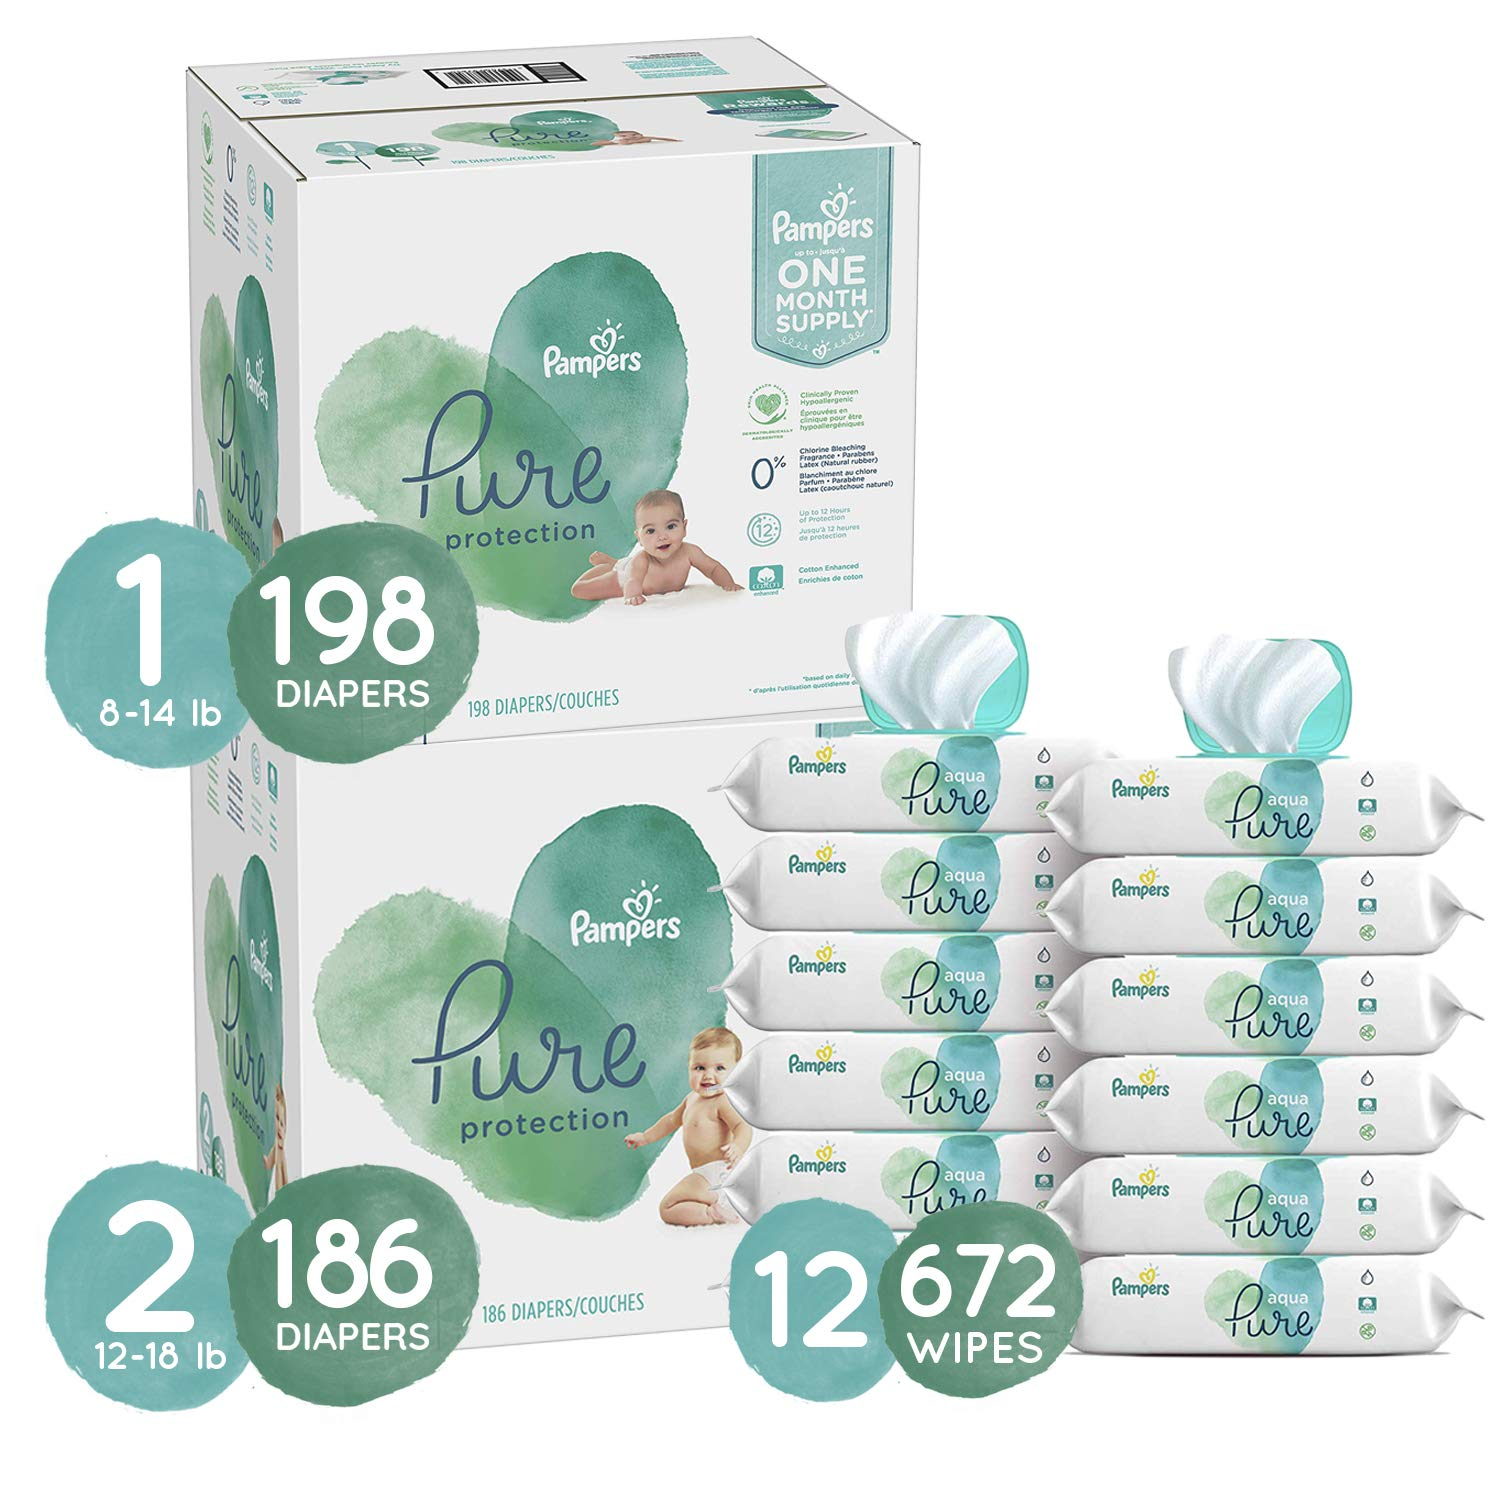 Pampers Baby Diapers and Wipes Starter Kit (2 Month Supply) - Pure Disposable Baby Diapers Sizes 1 (198 Count) & 2 (186 Count), Hypoallergenic and Fragrance Free with Aqua Pure Baby Wipes, 672 Count by Pampers